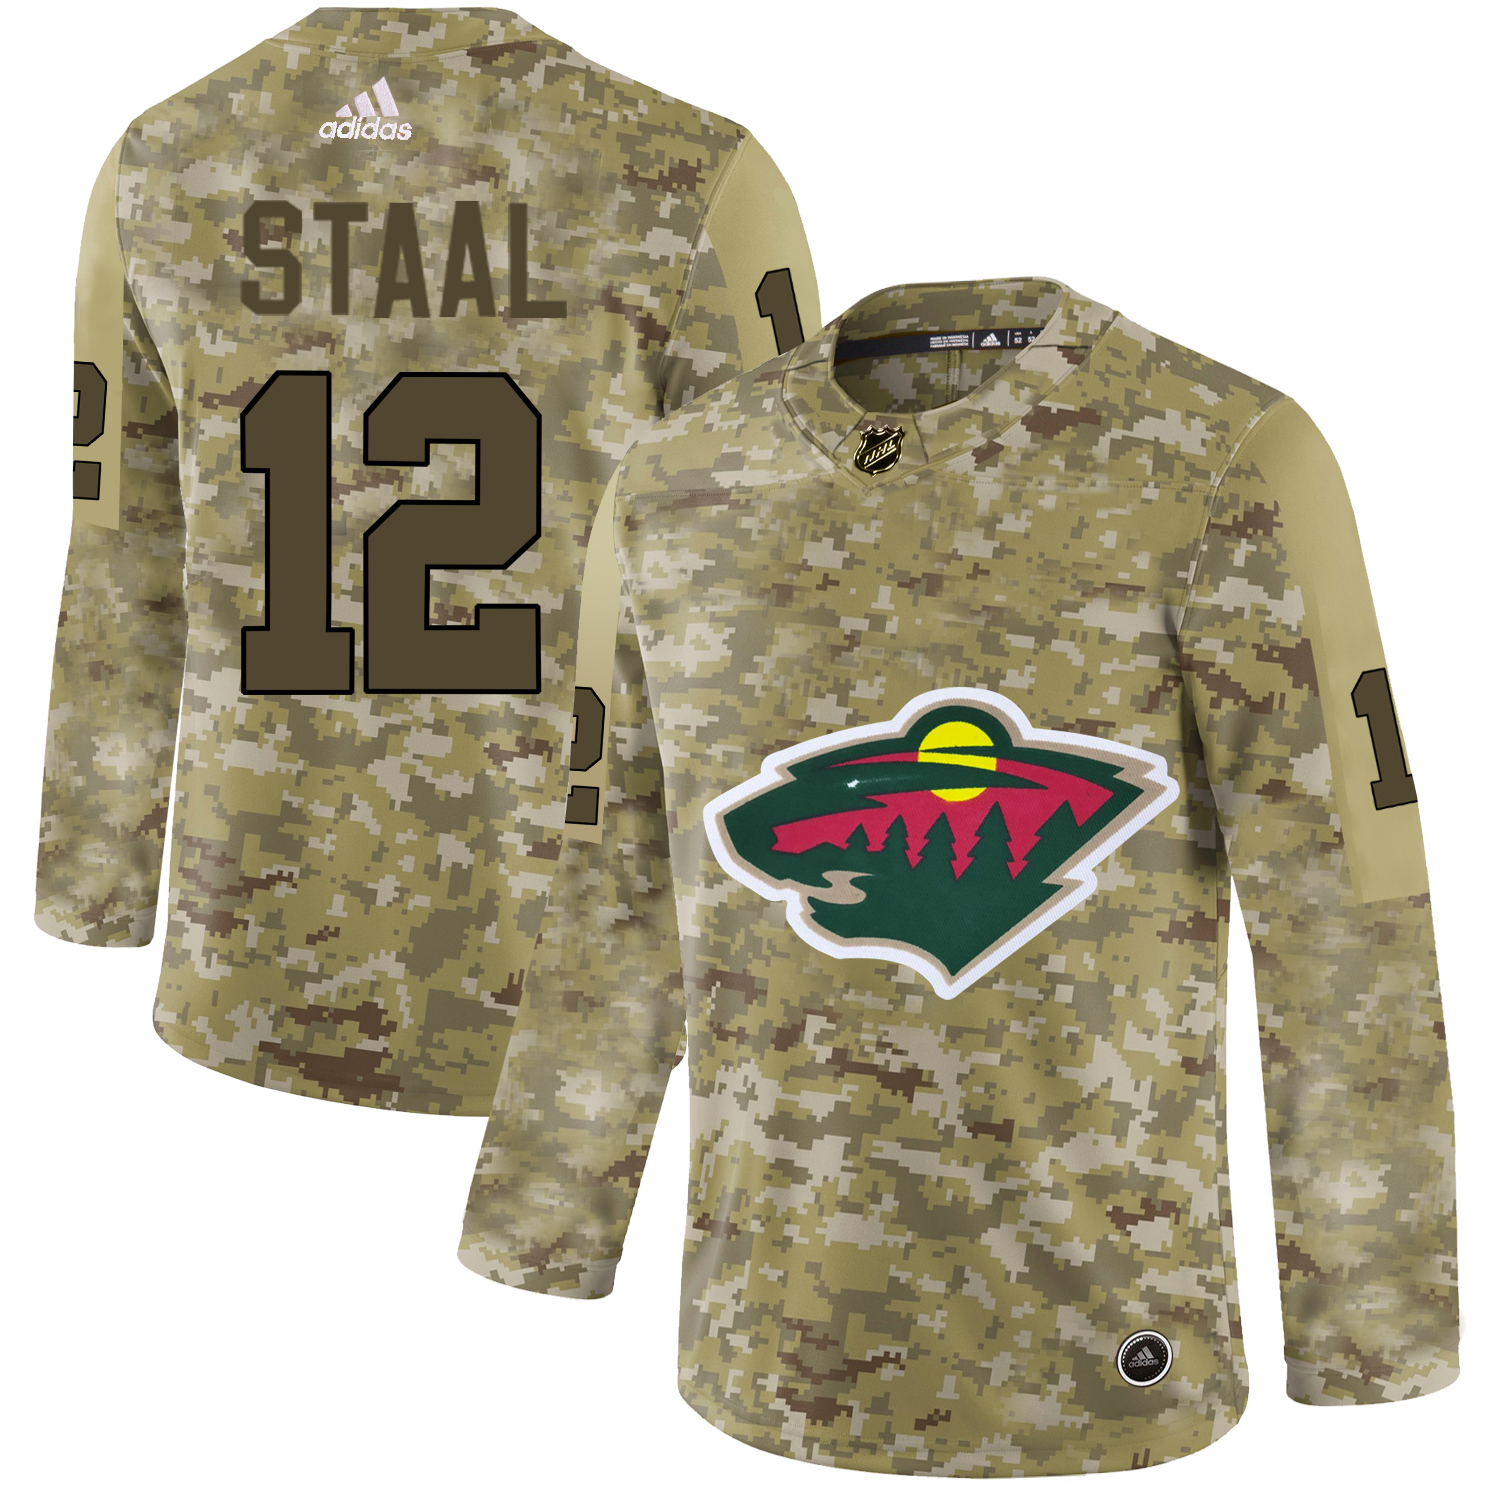 Adidas Wild #12 Eric Staal Camo Authentic Stitched NHL Jersey